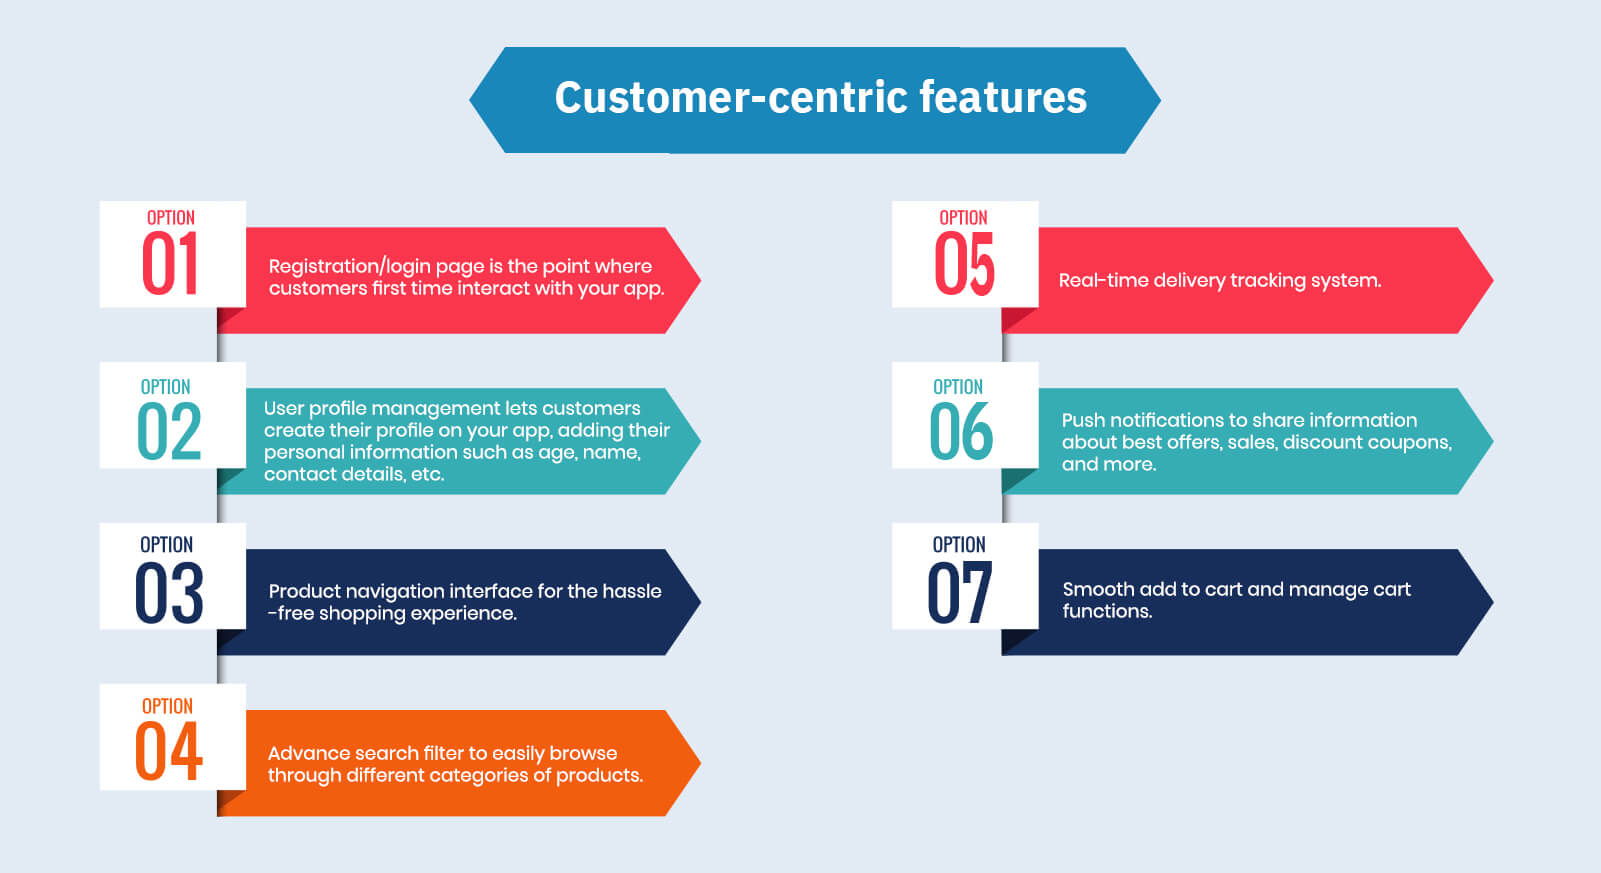 Customer-centric features